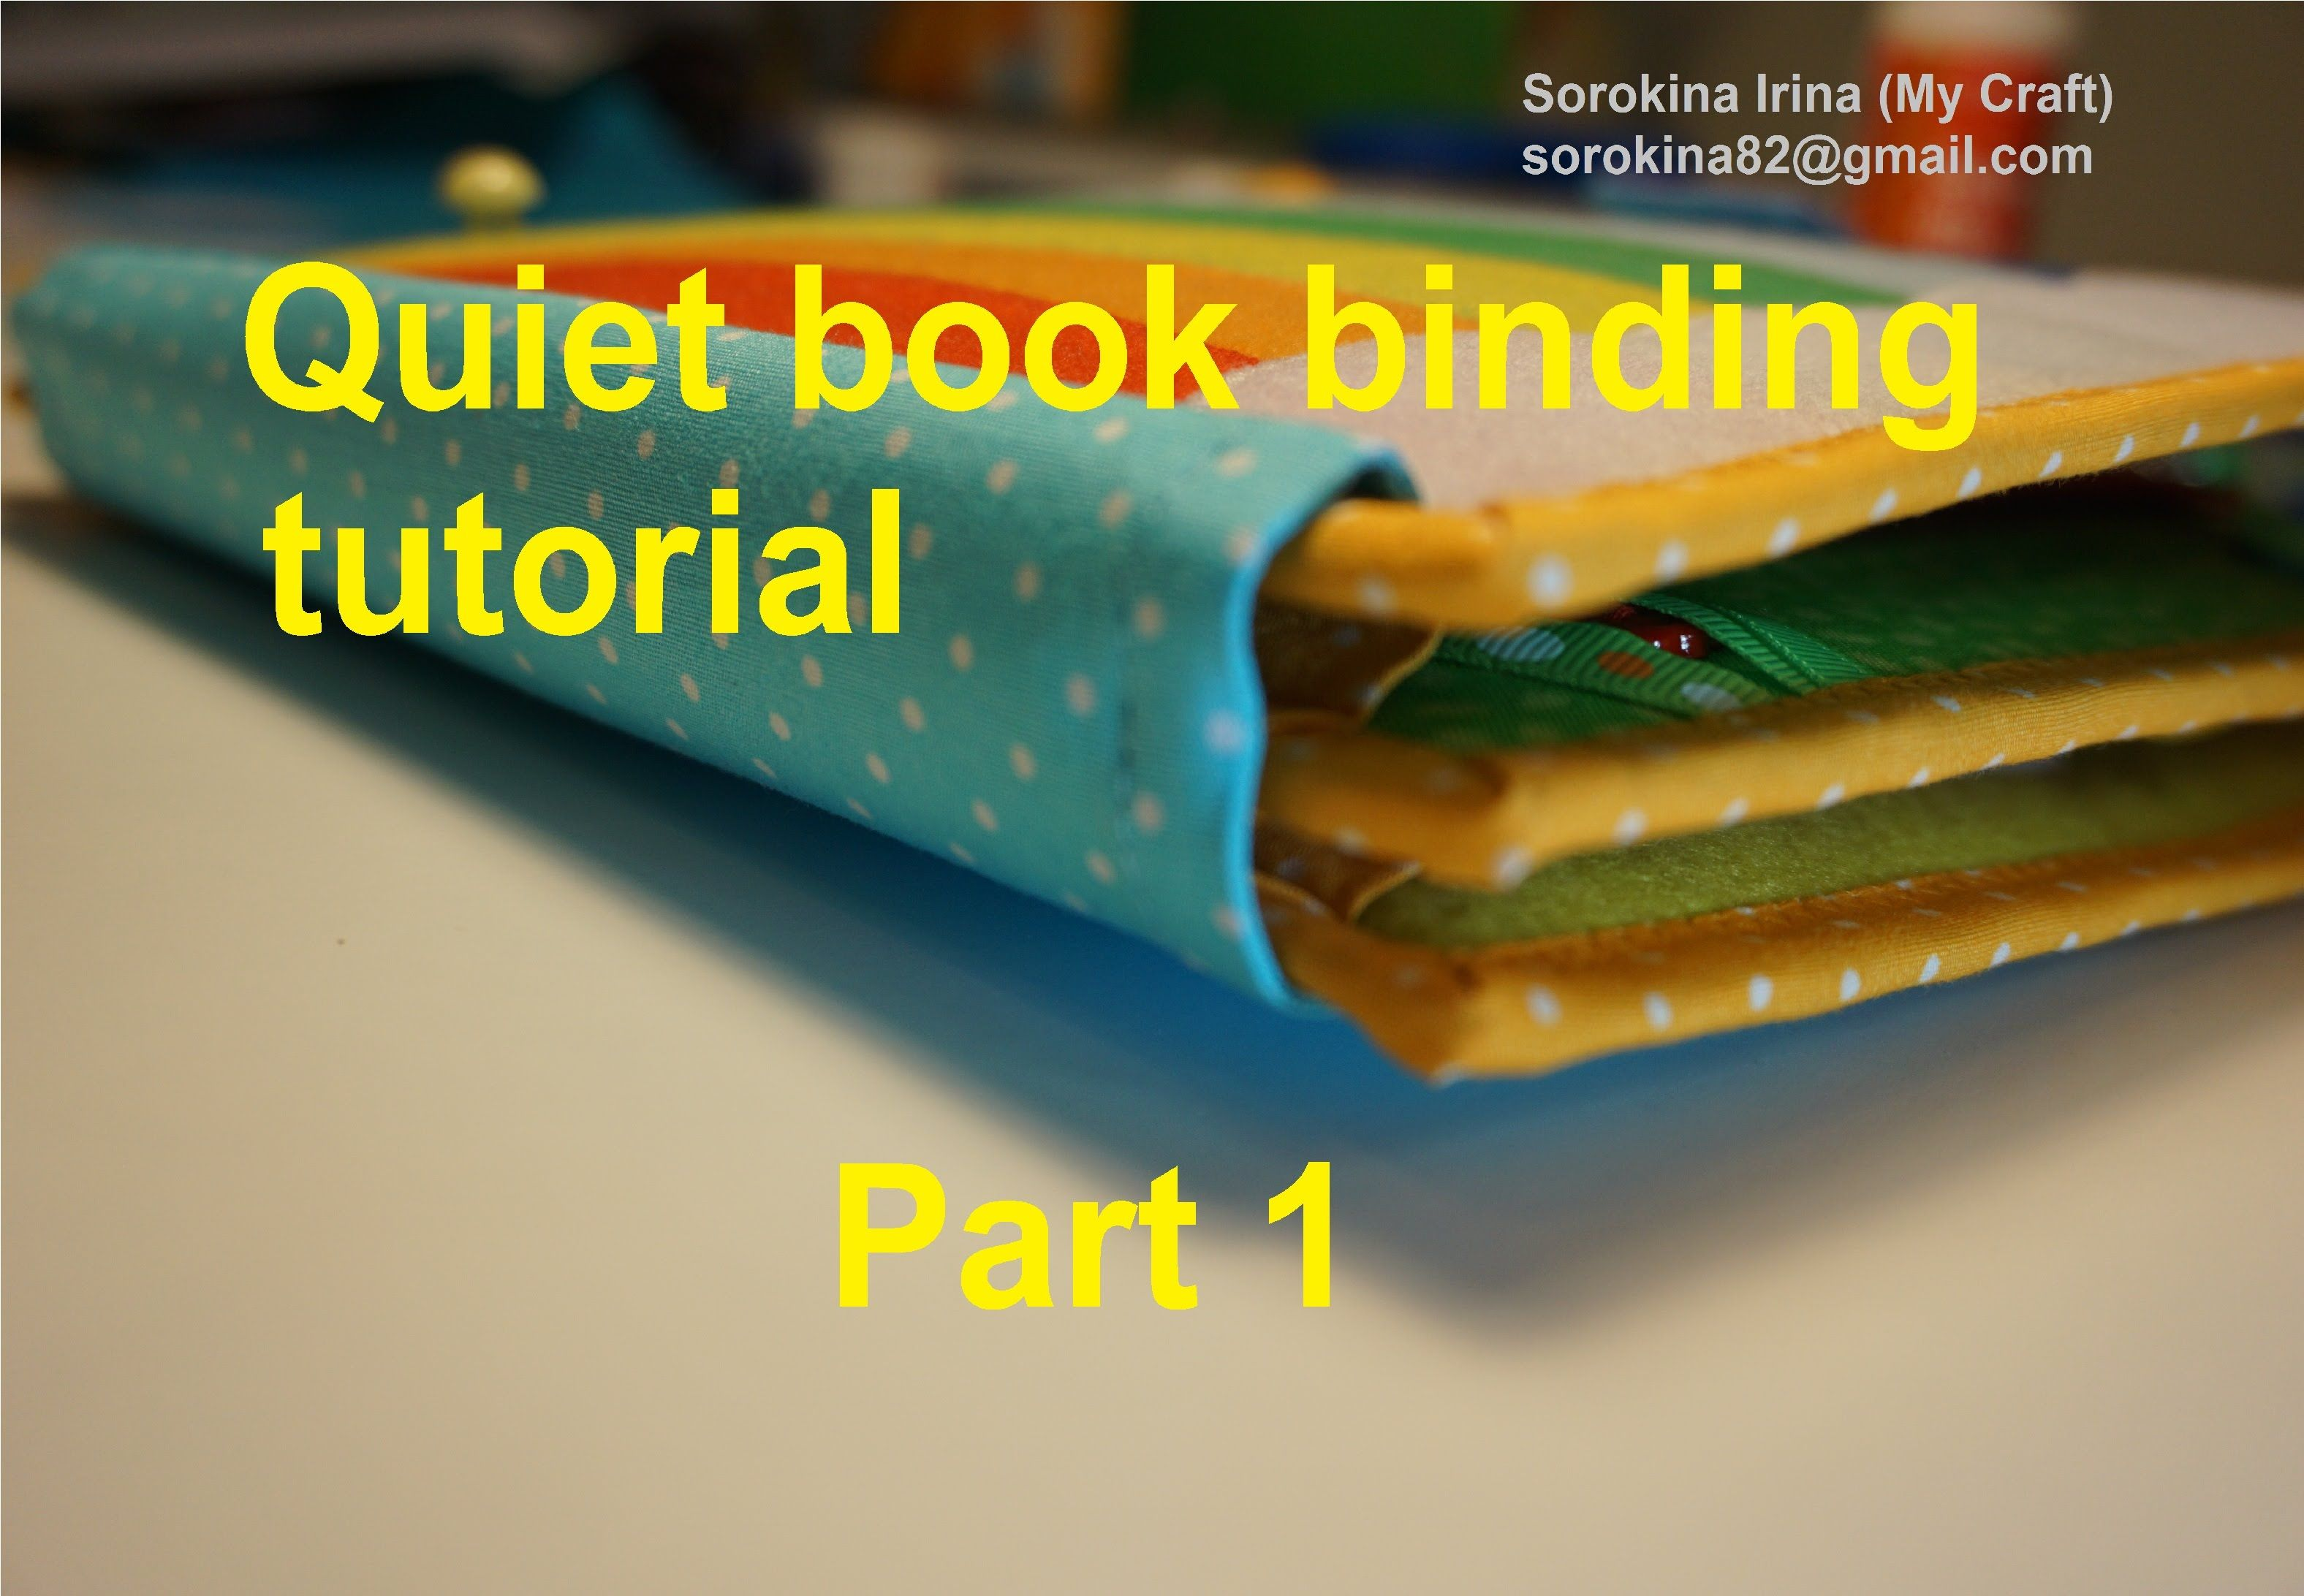 Quiet book tutorial: how to prepare pages and binding strips https://www